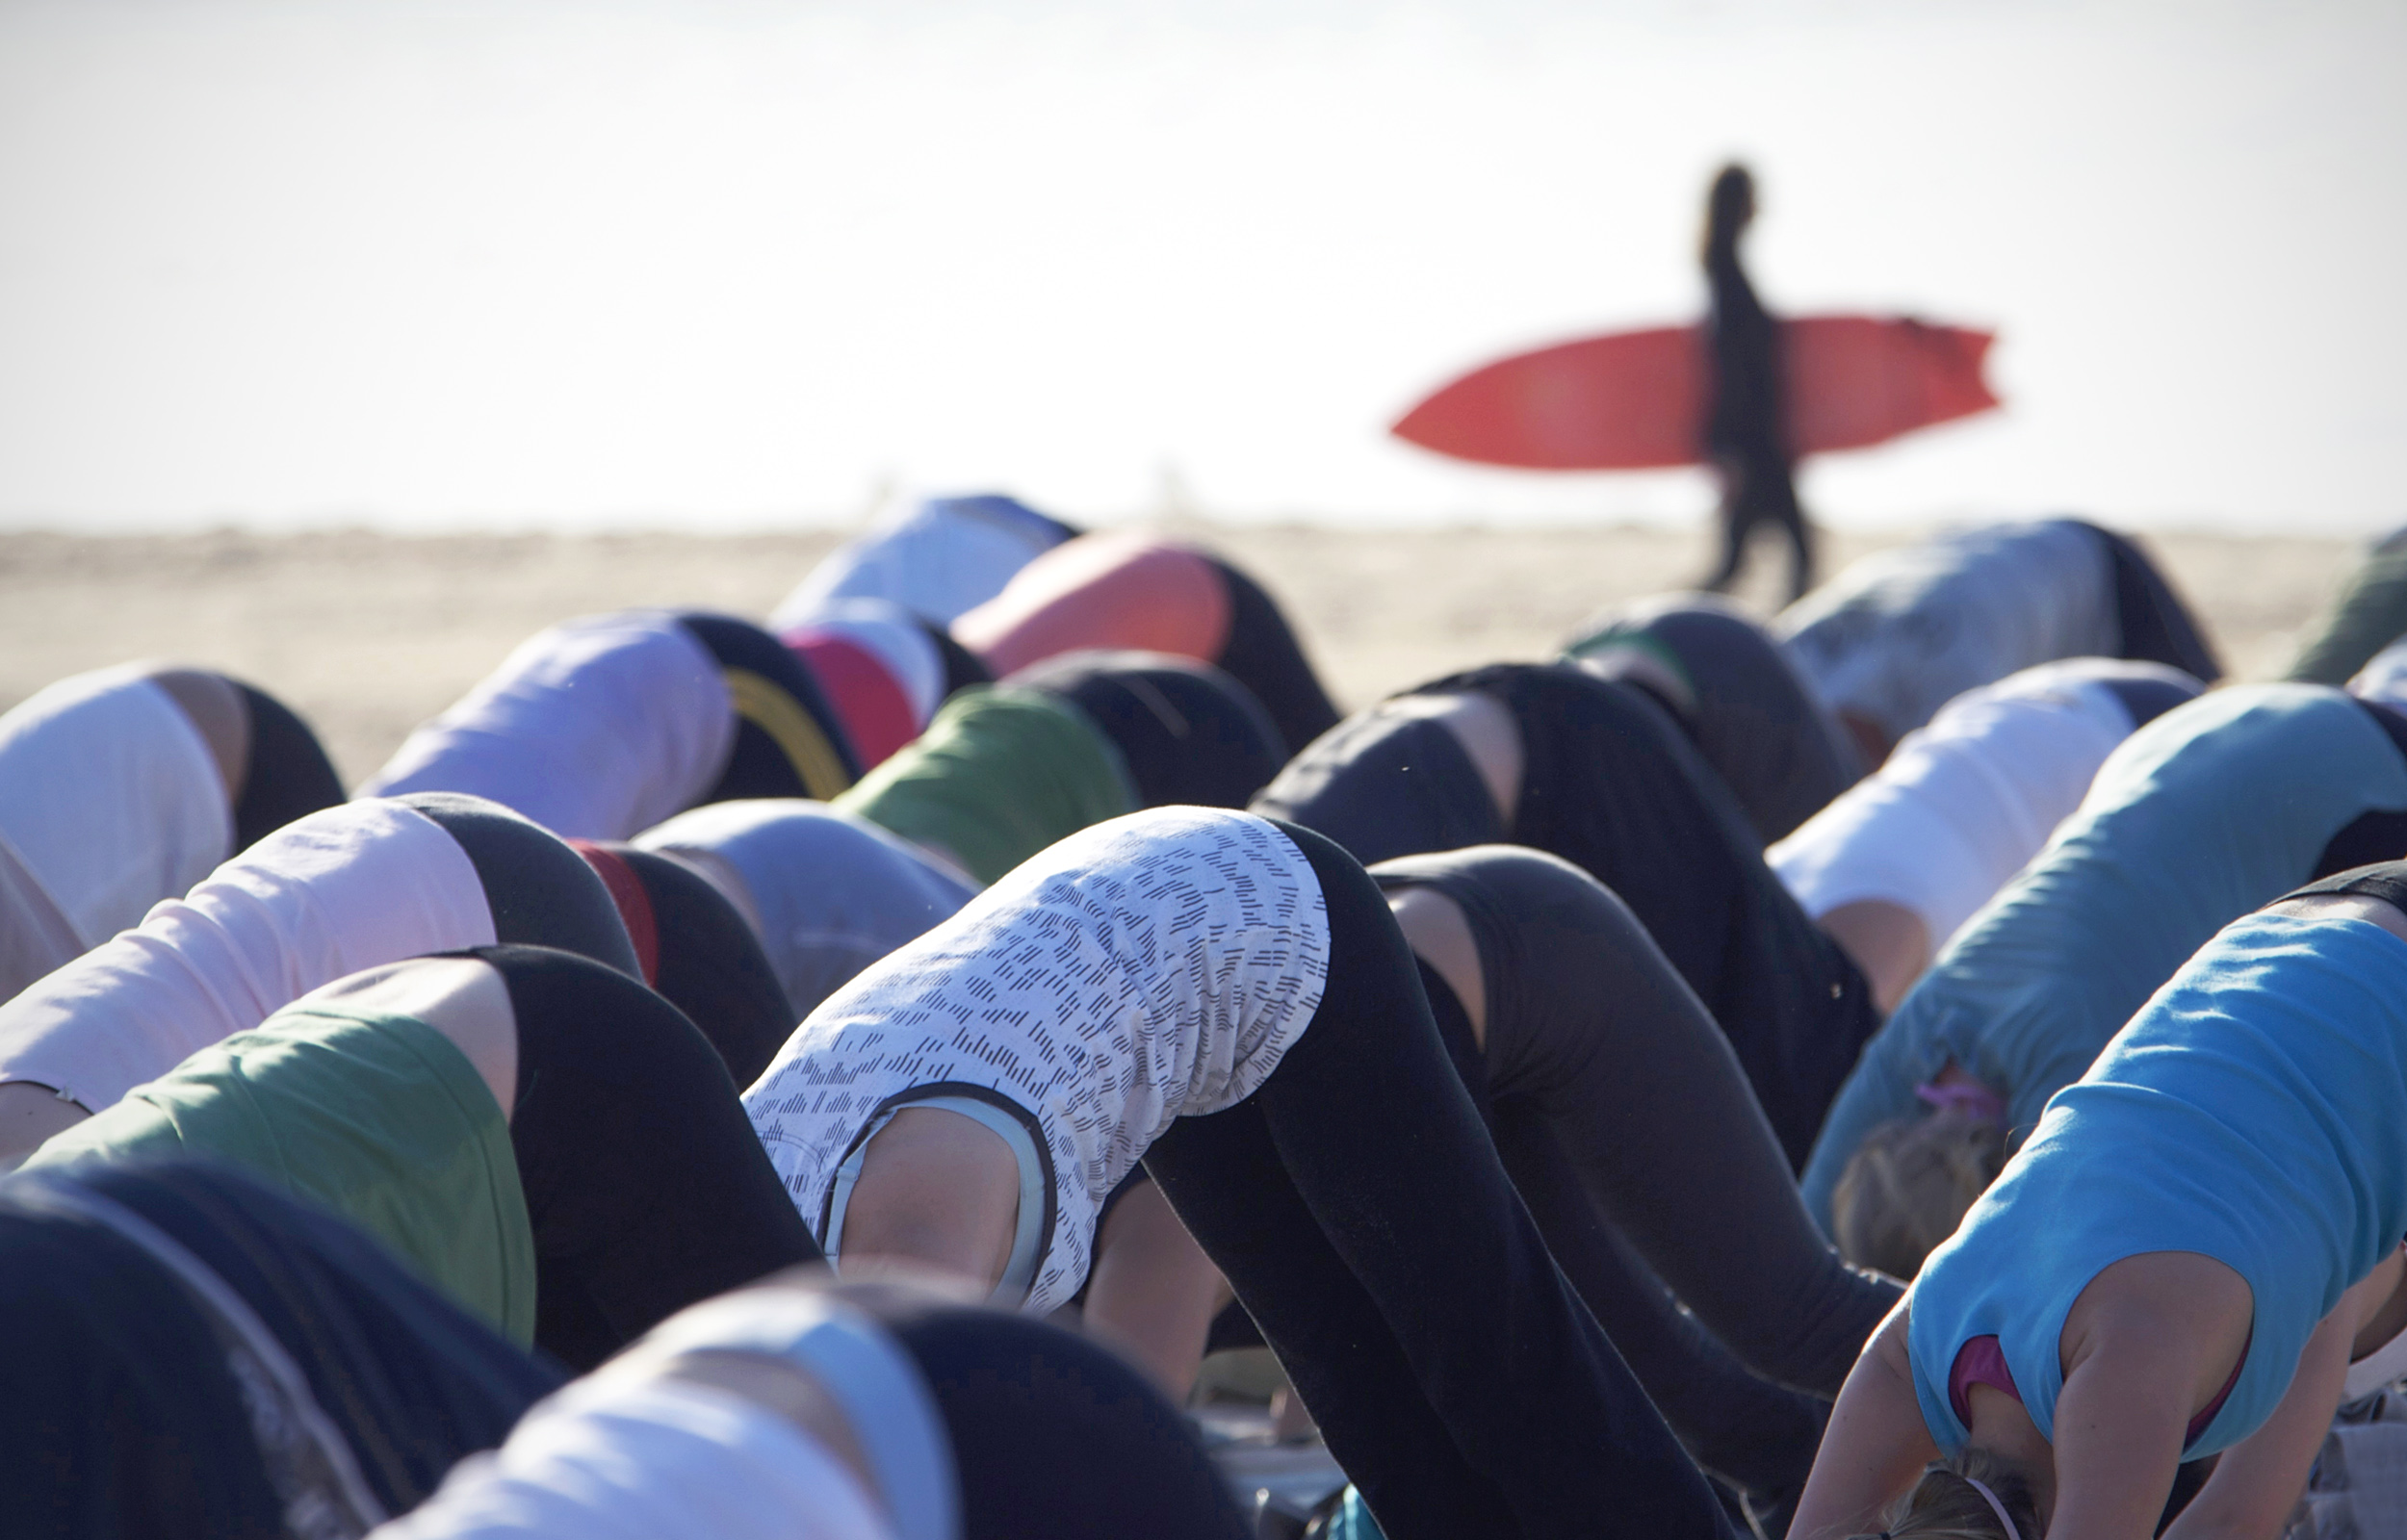 Group of ladies doing downward dog yoga pose on the beach, surfer in background, Bondi Beach, Sydney